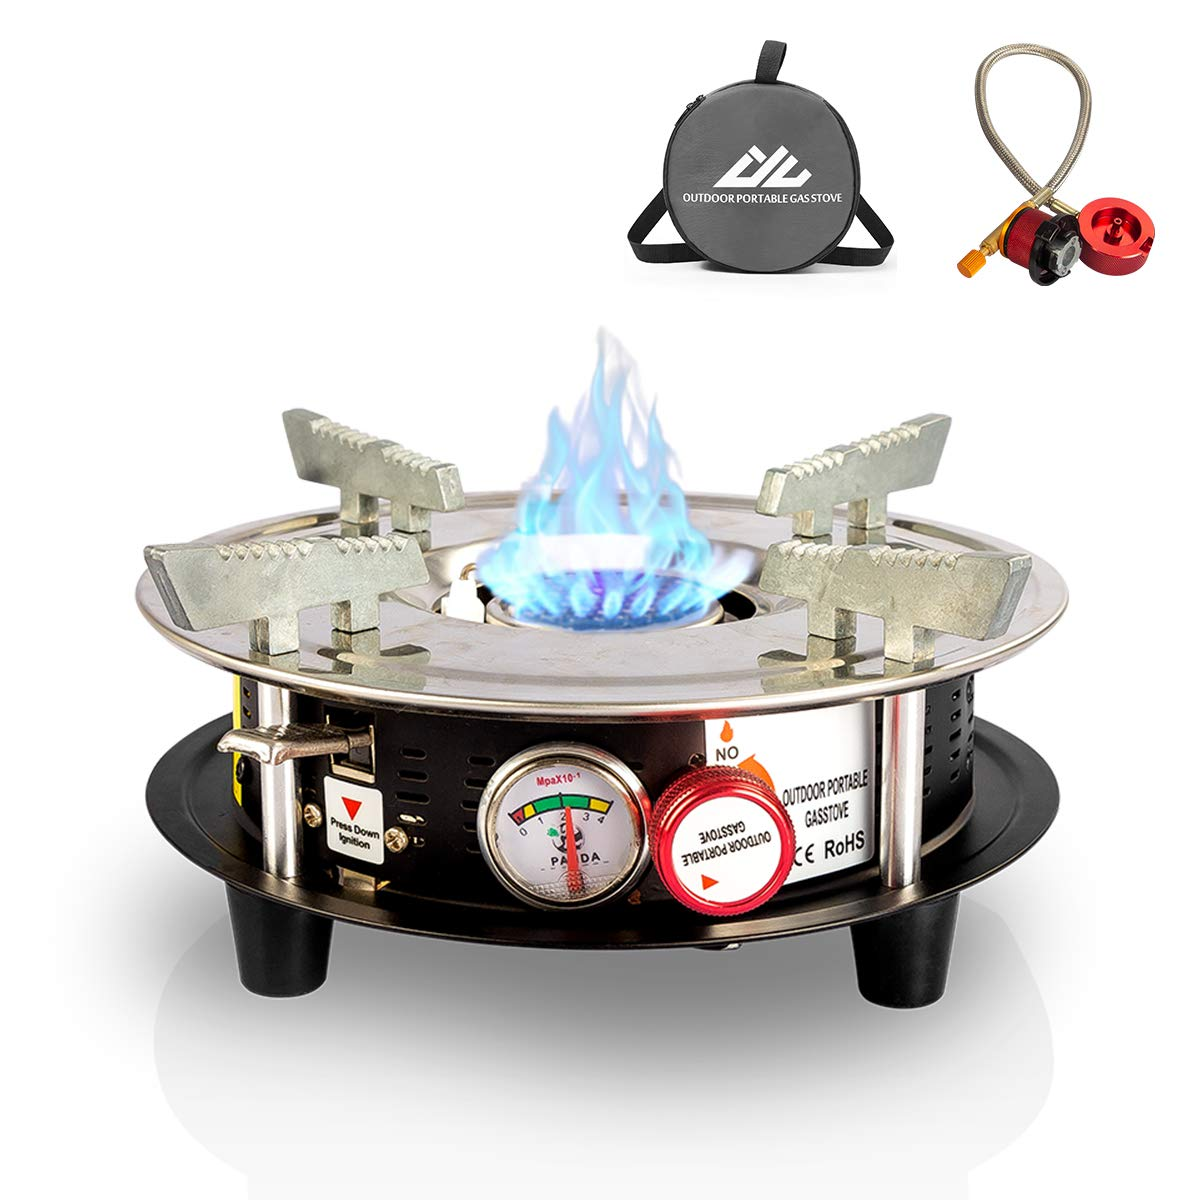 Drhob Portable Cooking Gas Stove Burner 10,000 BTU Dual Fuel Propane or Butane Patio Backpacking Stove with Propane Regulator Hose & Storage Bag for Outdoor, Hiking,Camping,Home Brewing Equipment